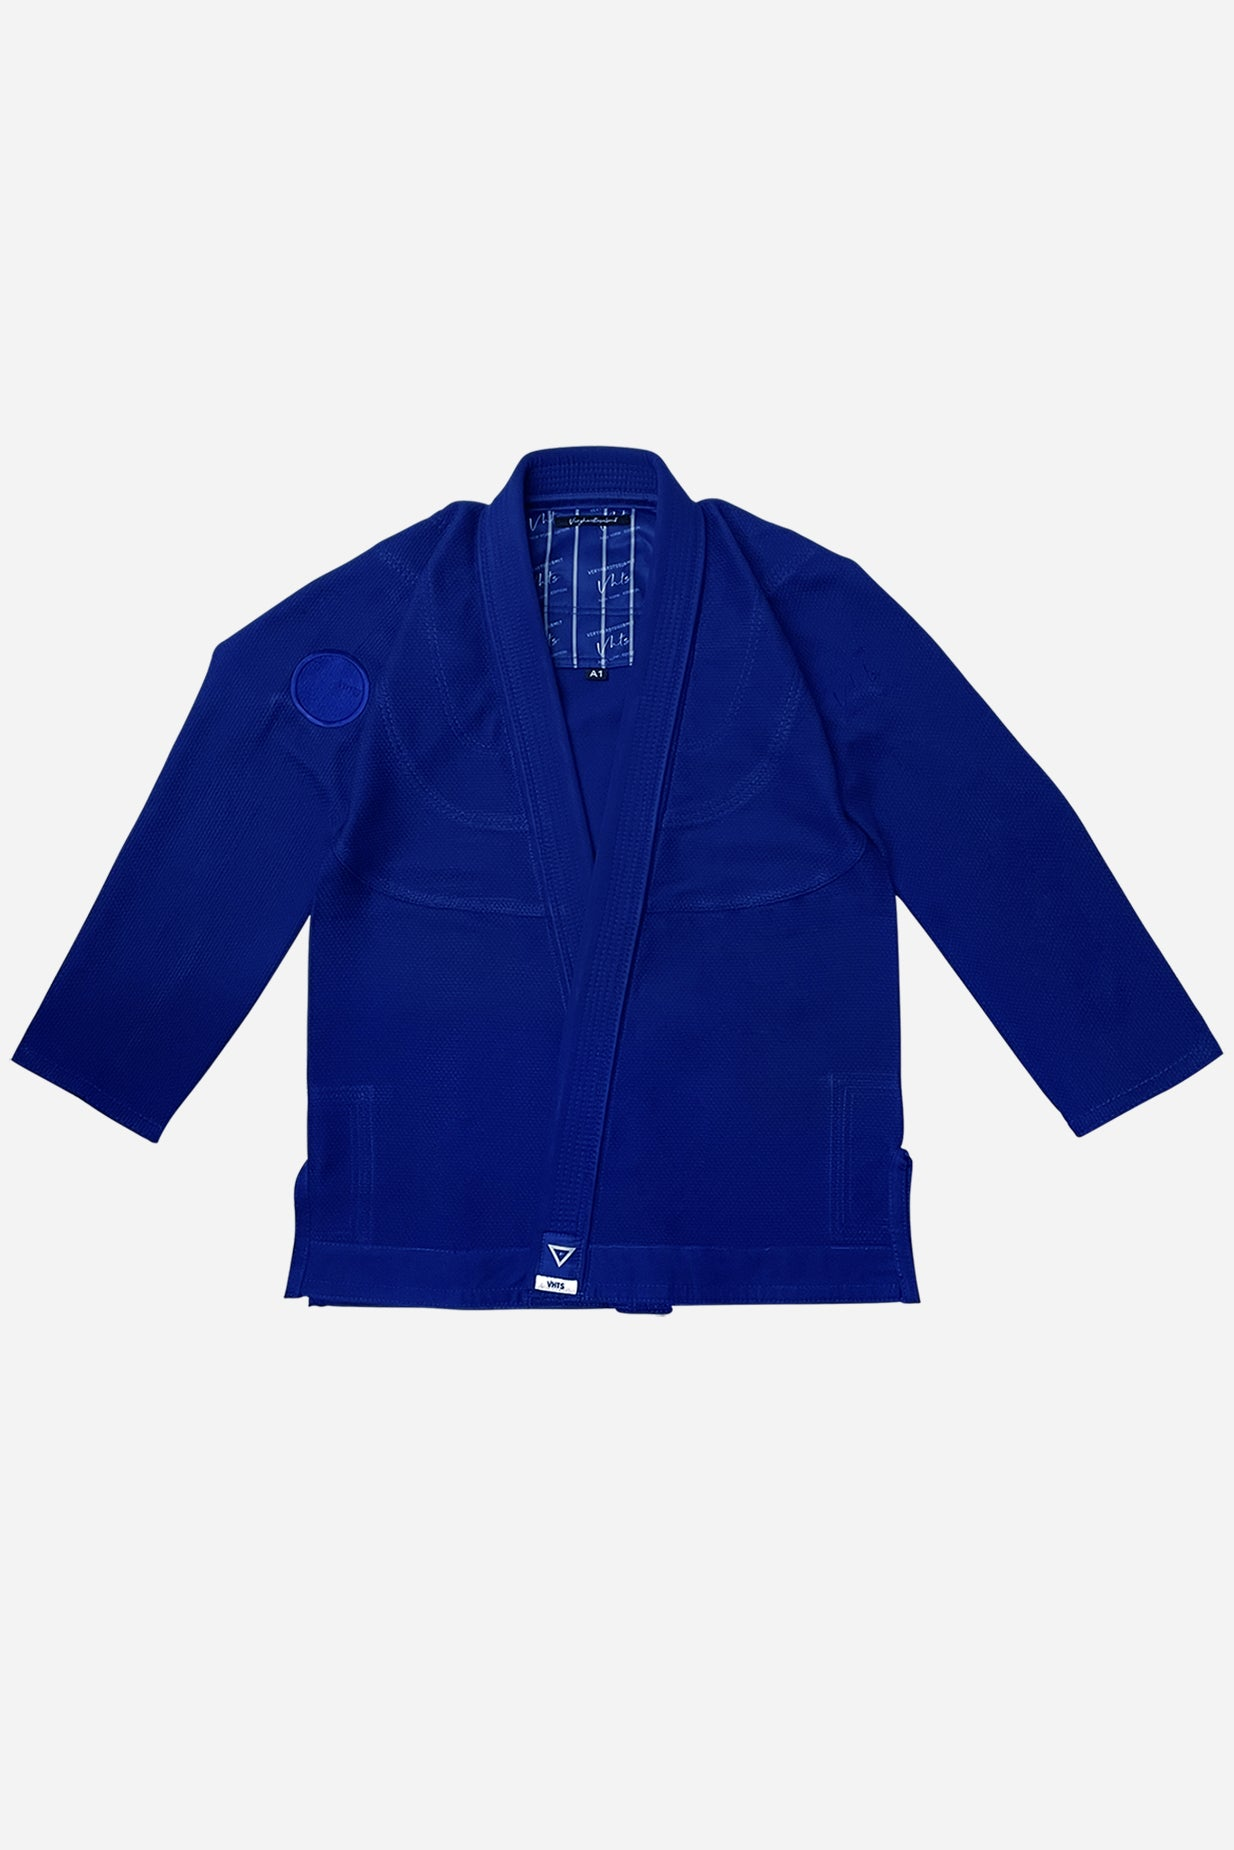 NY Edition 3.0 Blue Front Jacket  450 gsm pearl weave  Pants  10 oz cotton twill    vhts europe